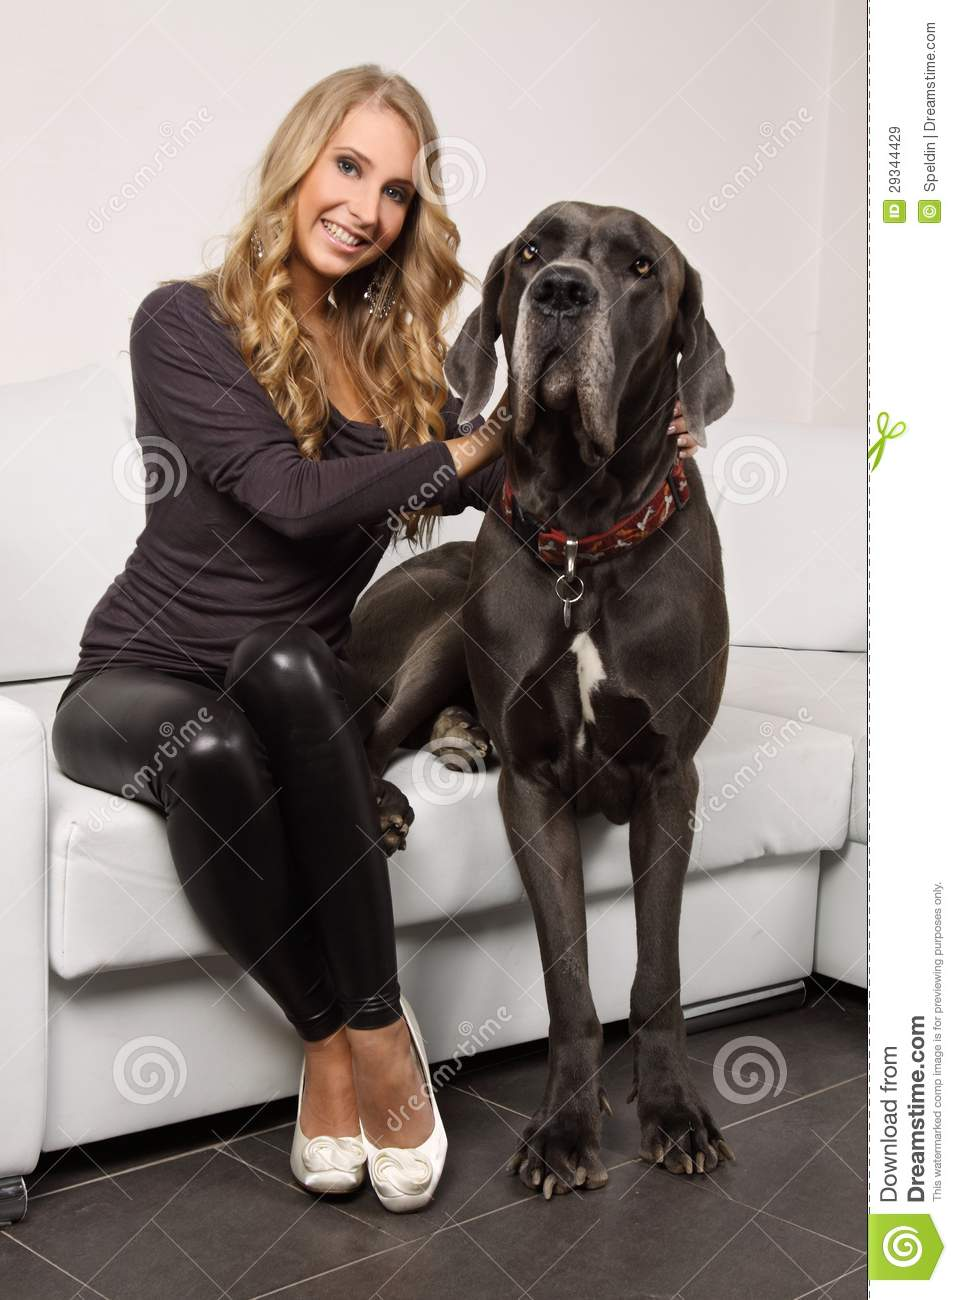 Beautiful Blonde Girl With A Large Dog On The Cou Royalty